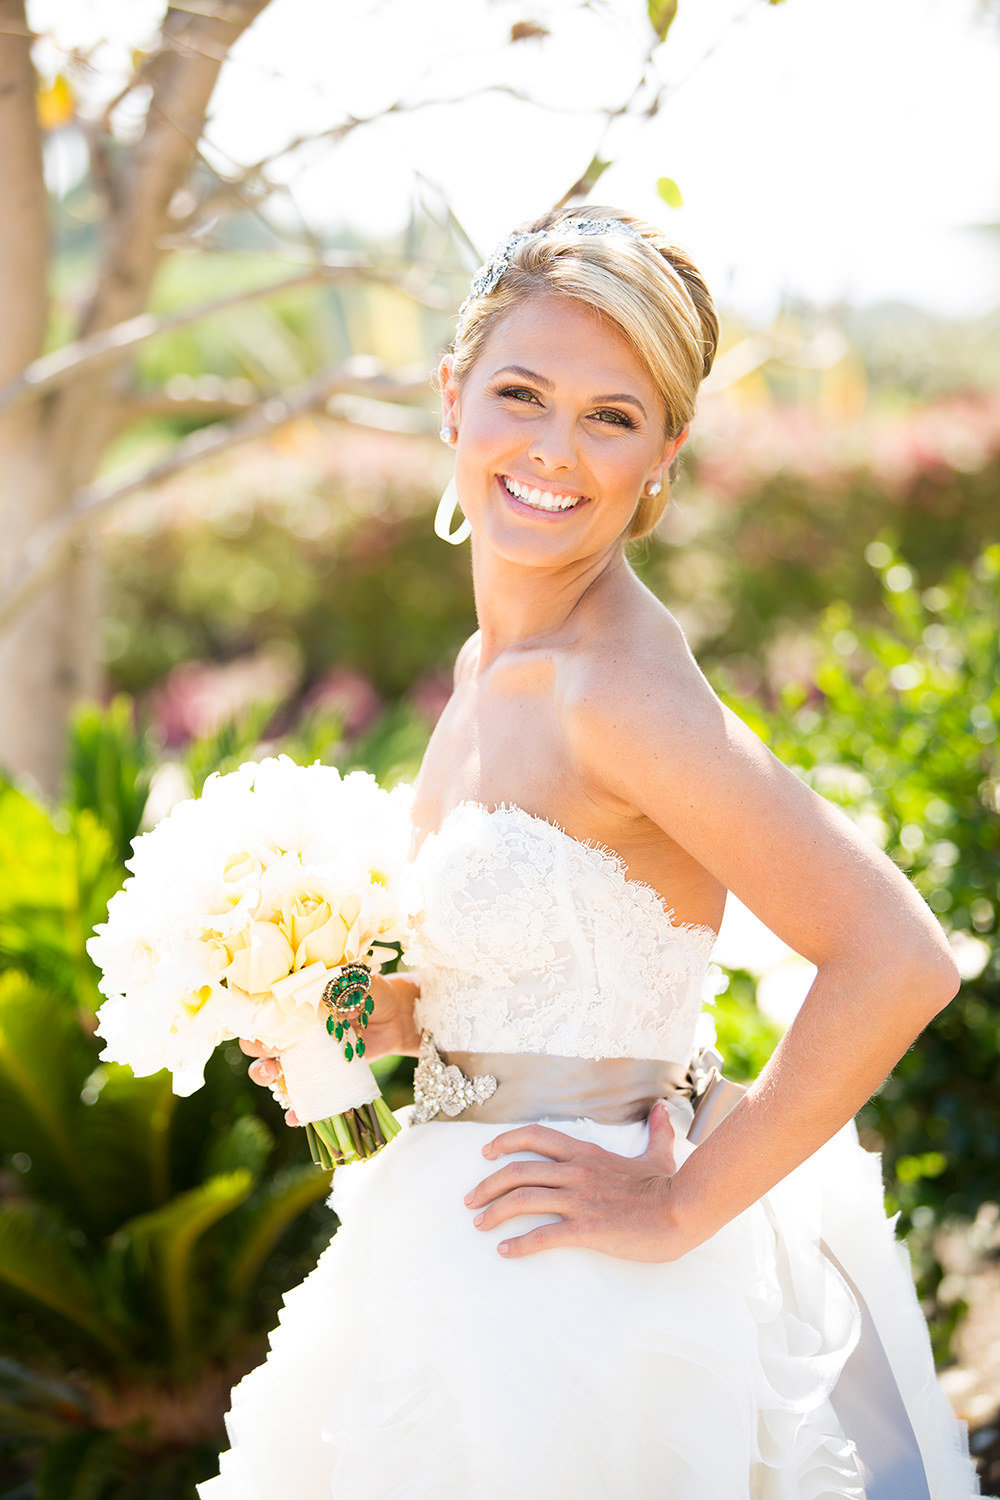 one of the most beautiful brides you will ever see